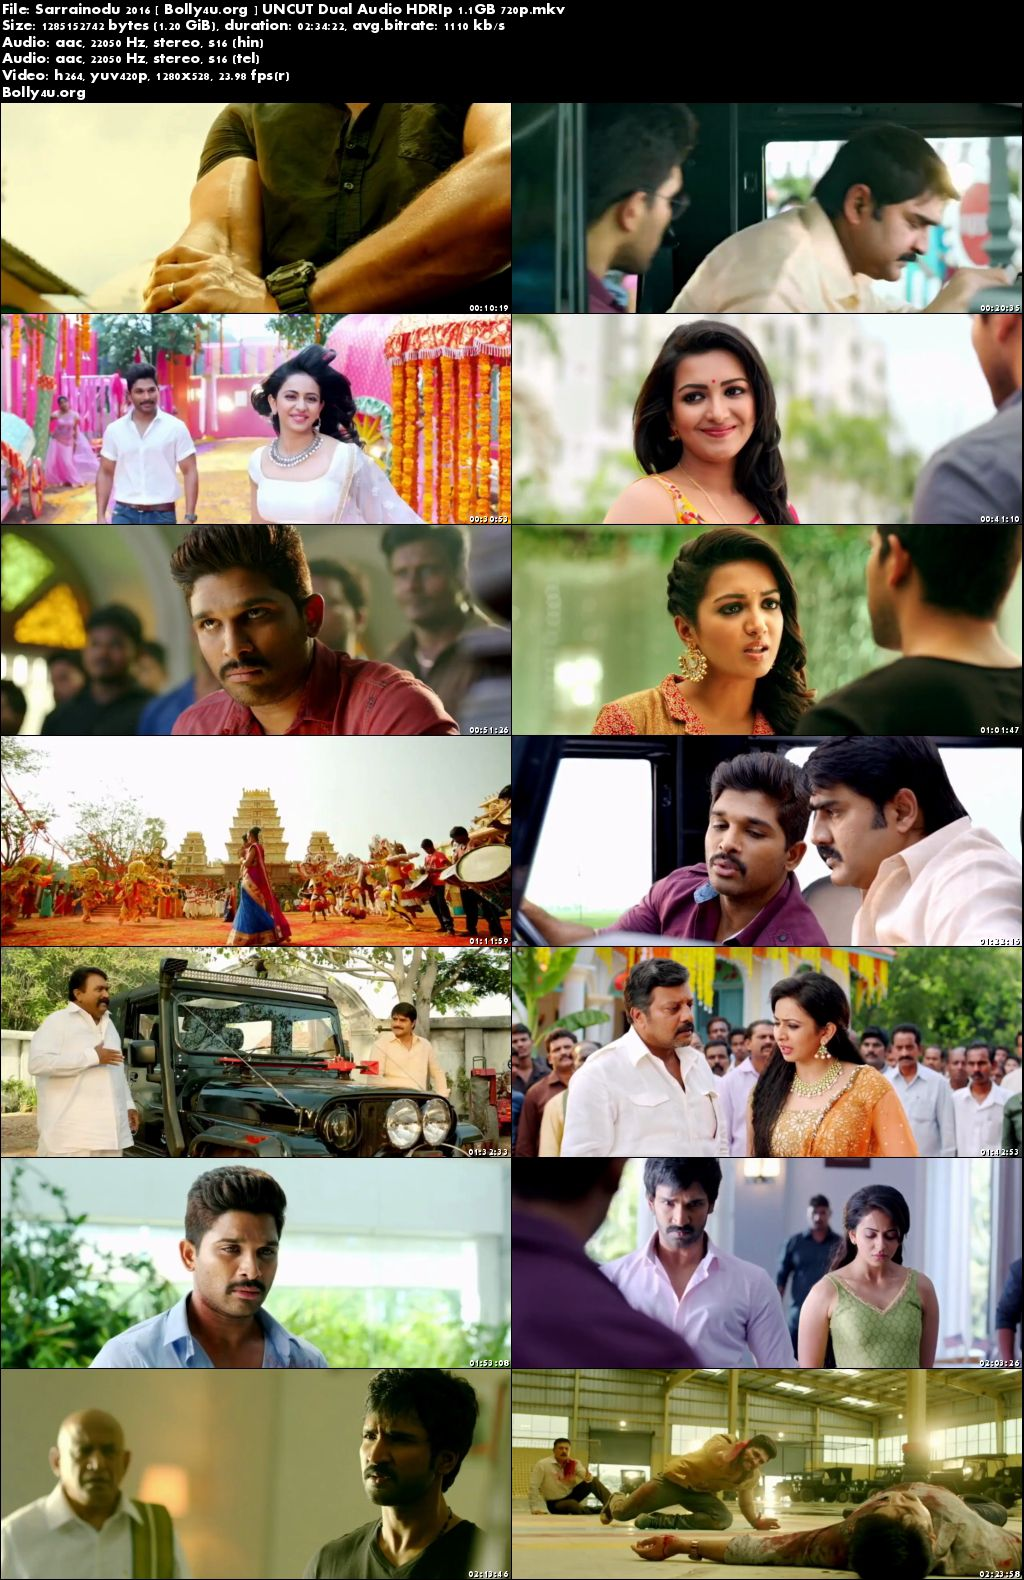 Sarrainodu 2016 HDRip UNCUT Hindi Dubbed Dual Audio 720p Download